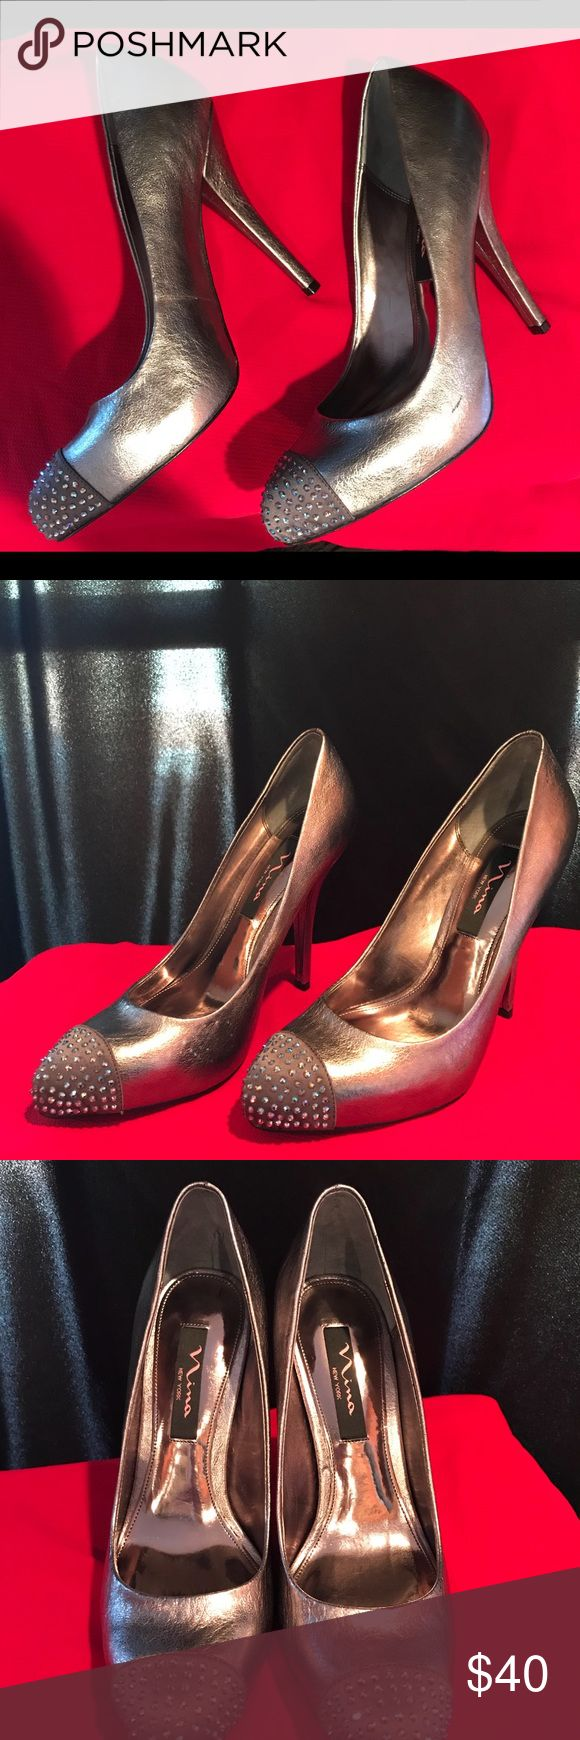 Elegant Silver Nina pumps size 7.5M Perfect for the Holidays!!!  Tasteful diamond detail to shine at the party without being over the top. Very good condition. A few minor dents, almost invisible. Nina Shoes Shoes Heels